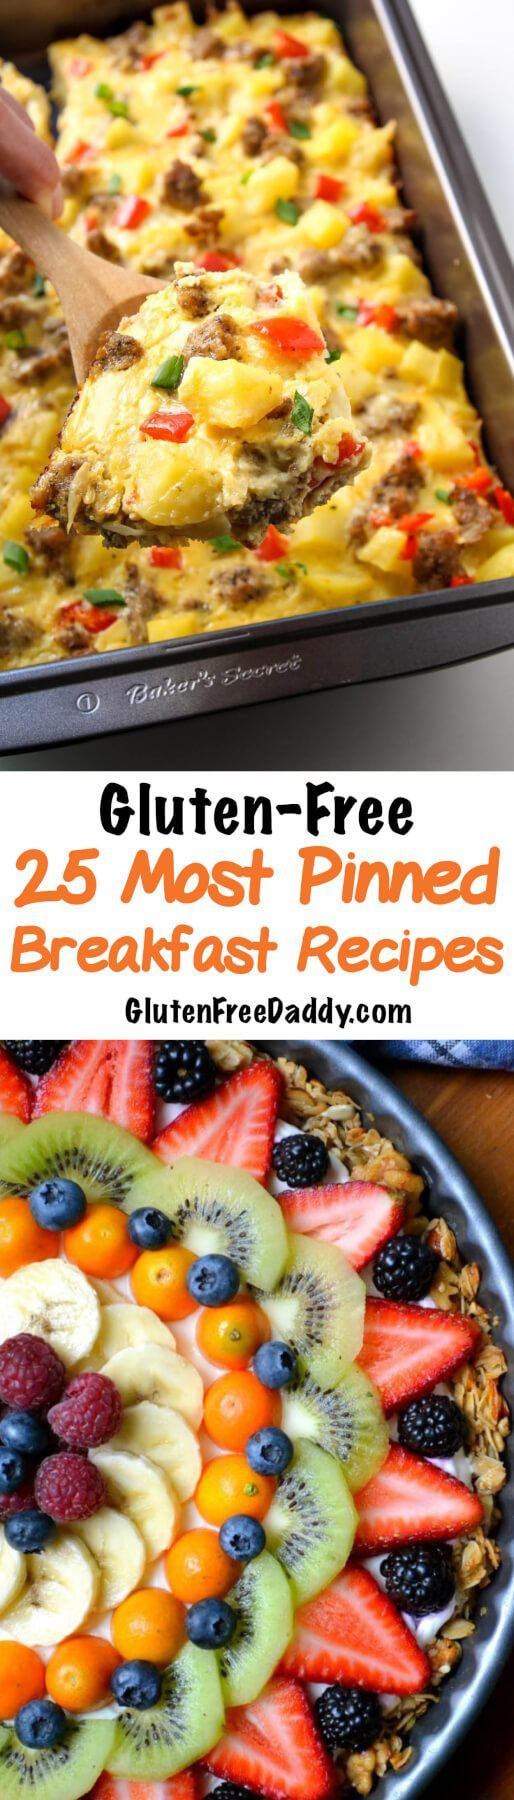 25 Most Pinned Gluten-Free Breakfast Recipes